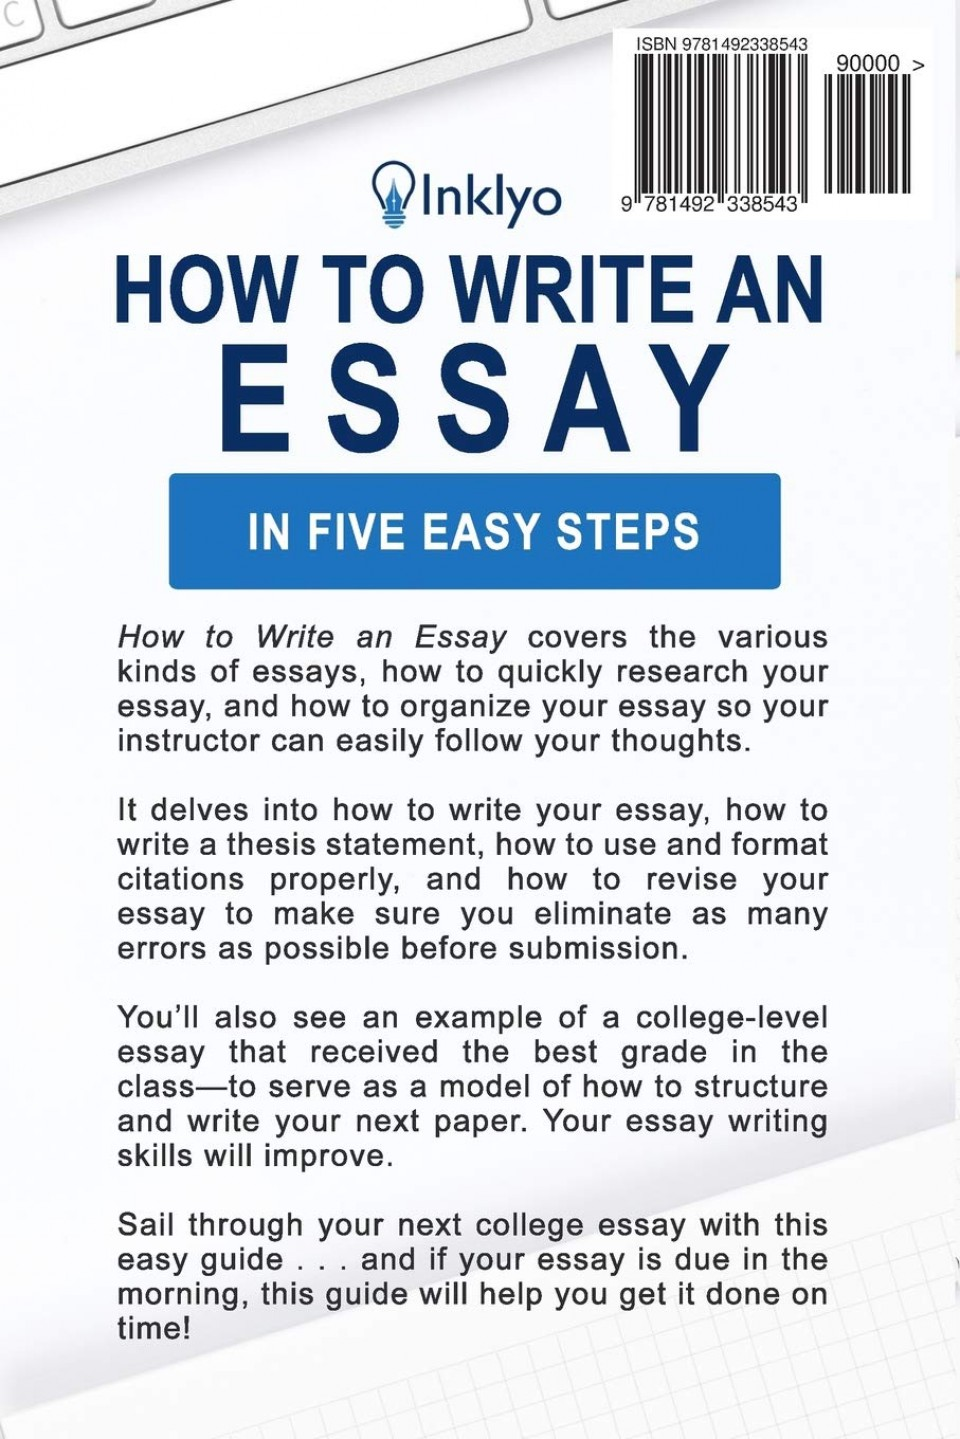 005 Easy Essay Writing Example Marvelous Examples Ielts Tips Task 2 Topics 960